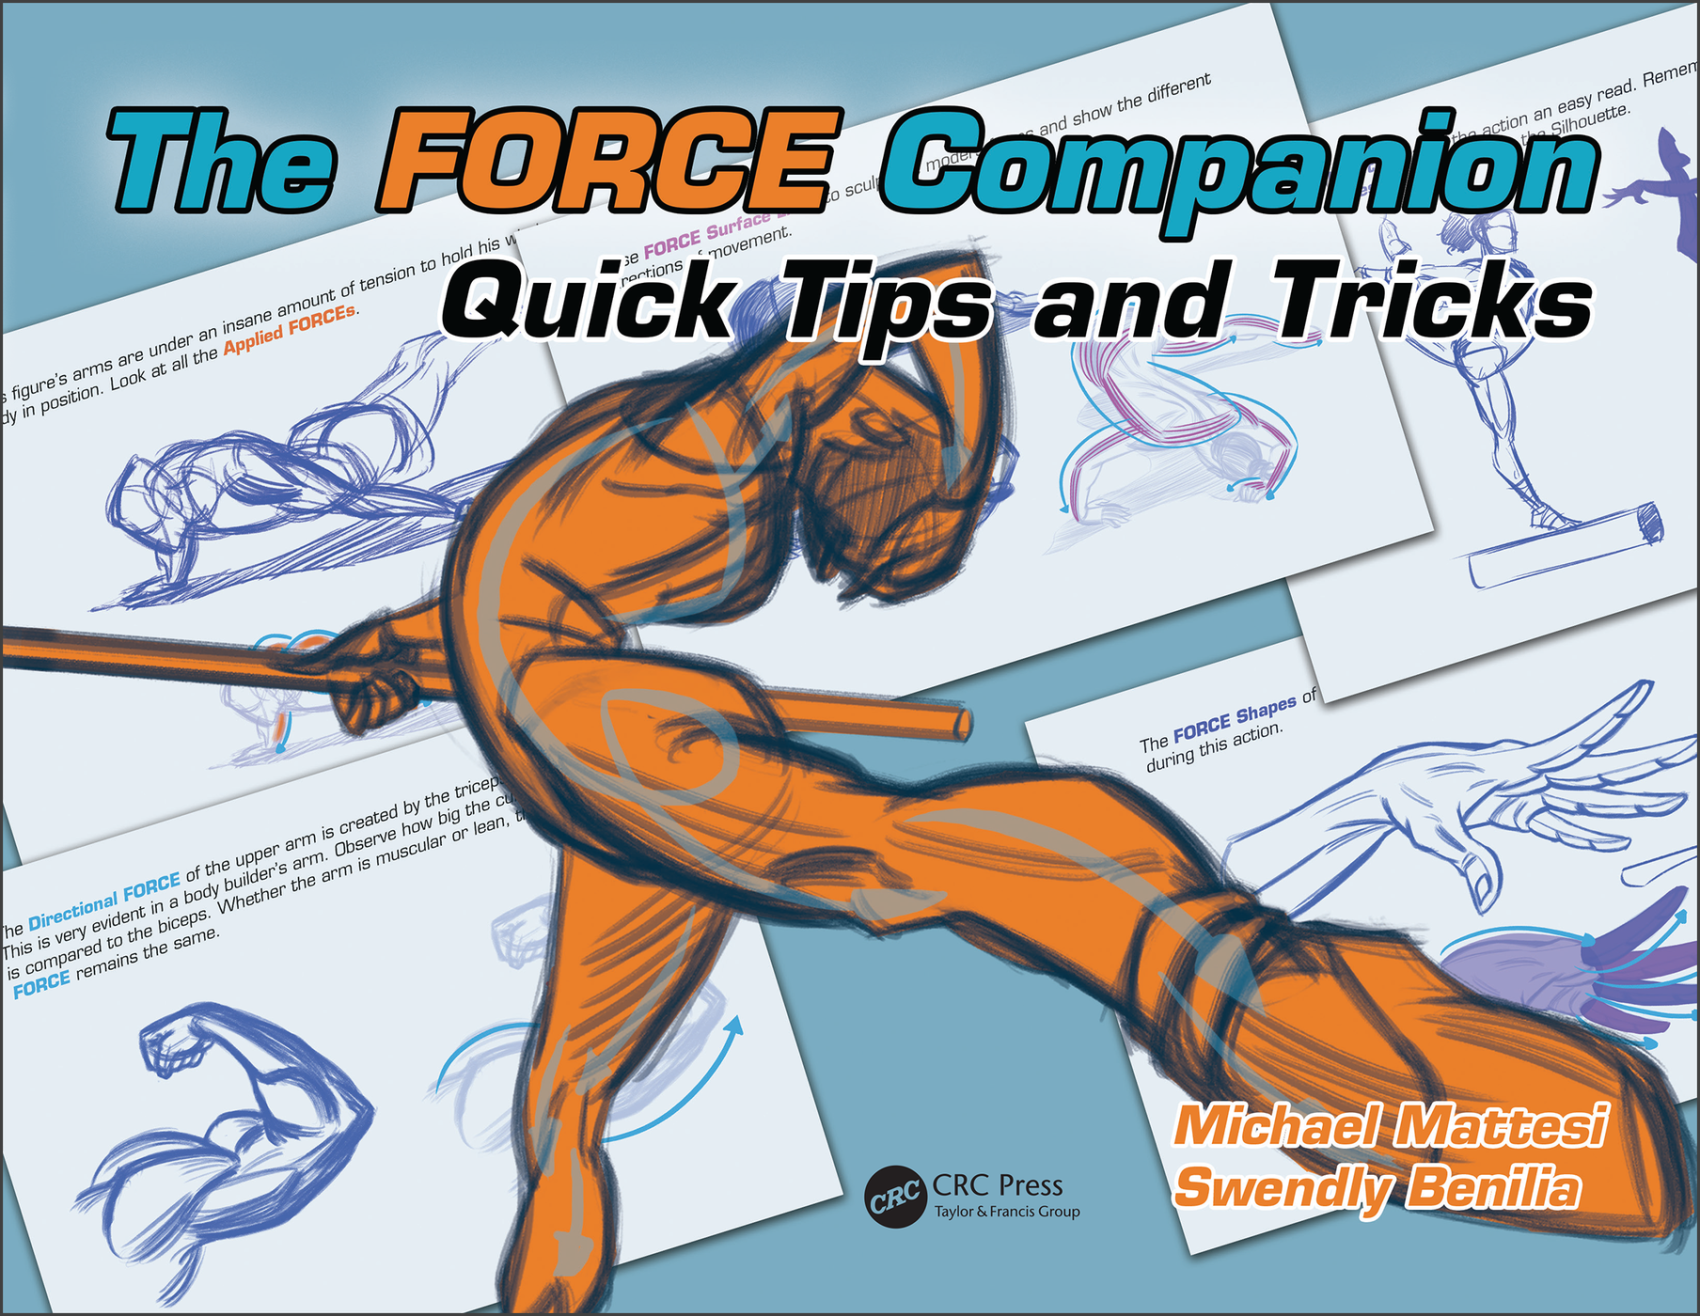 The FORCE Companion Quick Tips and Tricks Book Cover by Mike Mattesi and Swendly Benilia